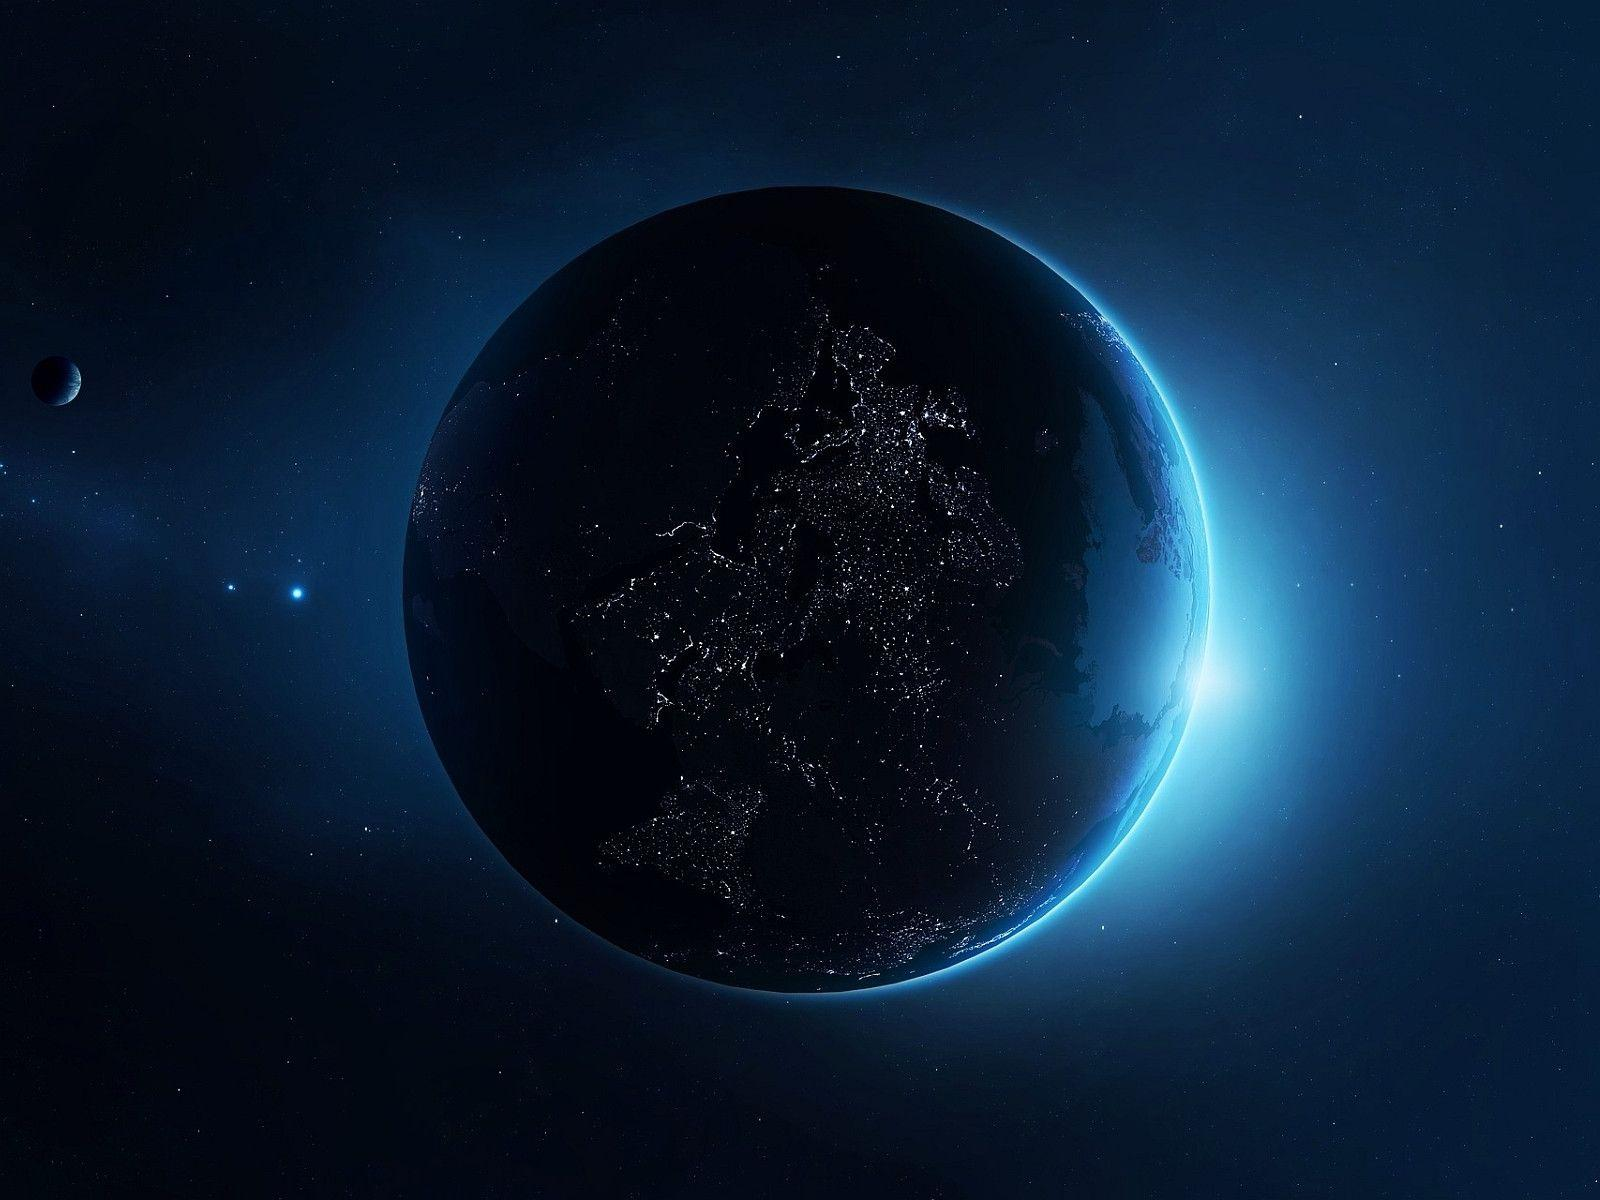 planets 3d windows background - photo #7